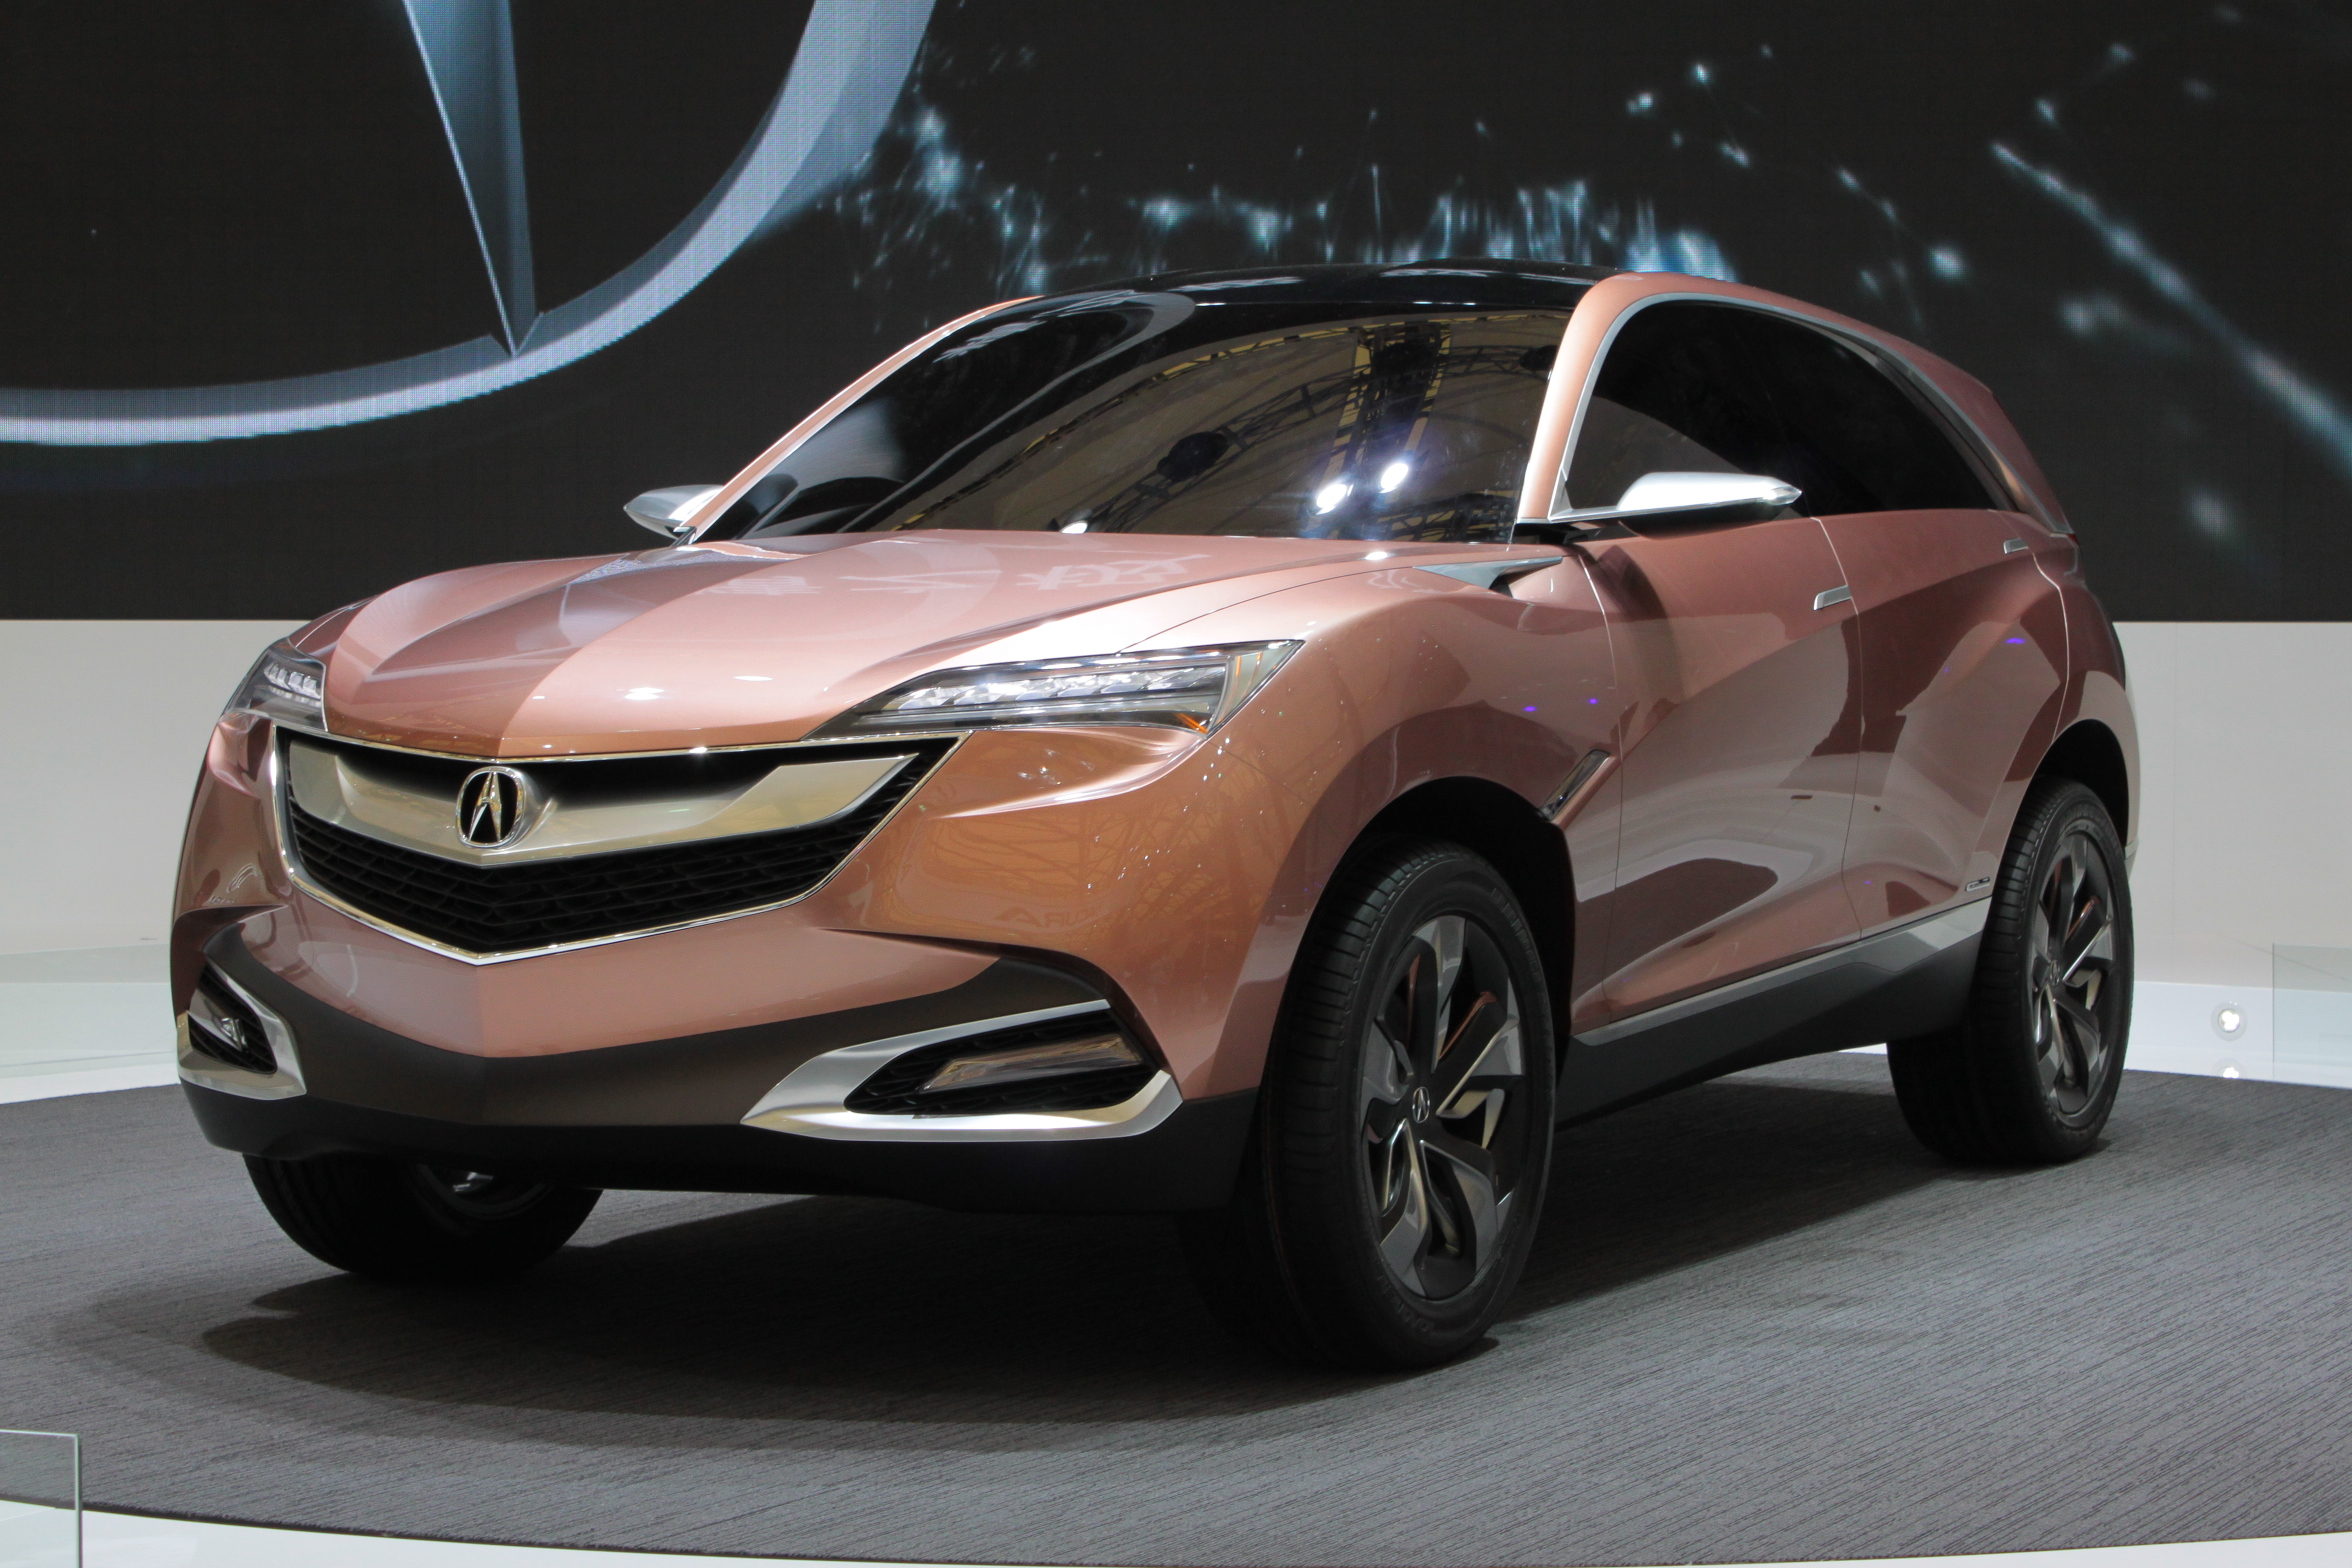 Acura Mdx Used Car Price